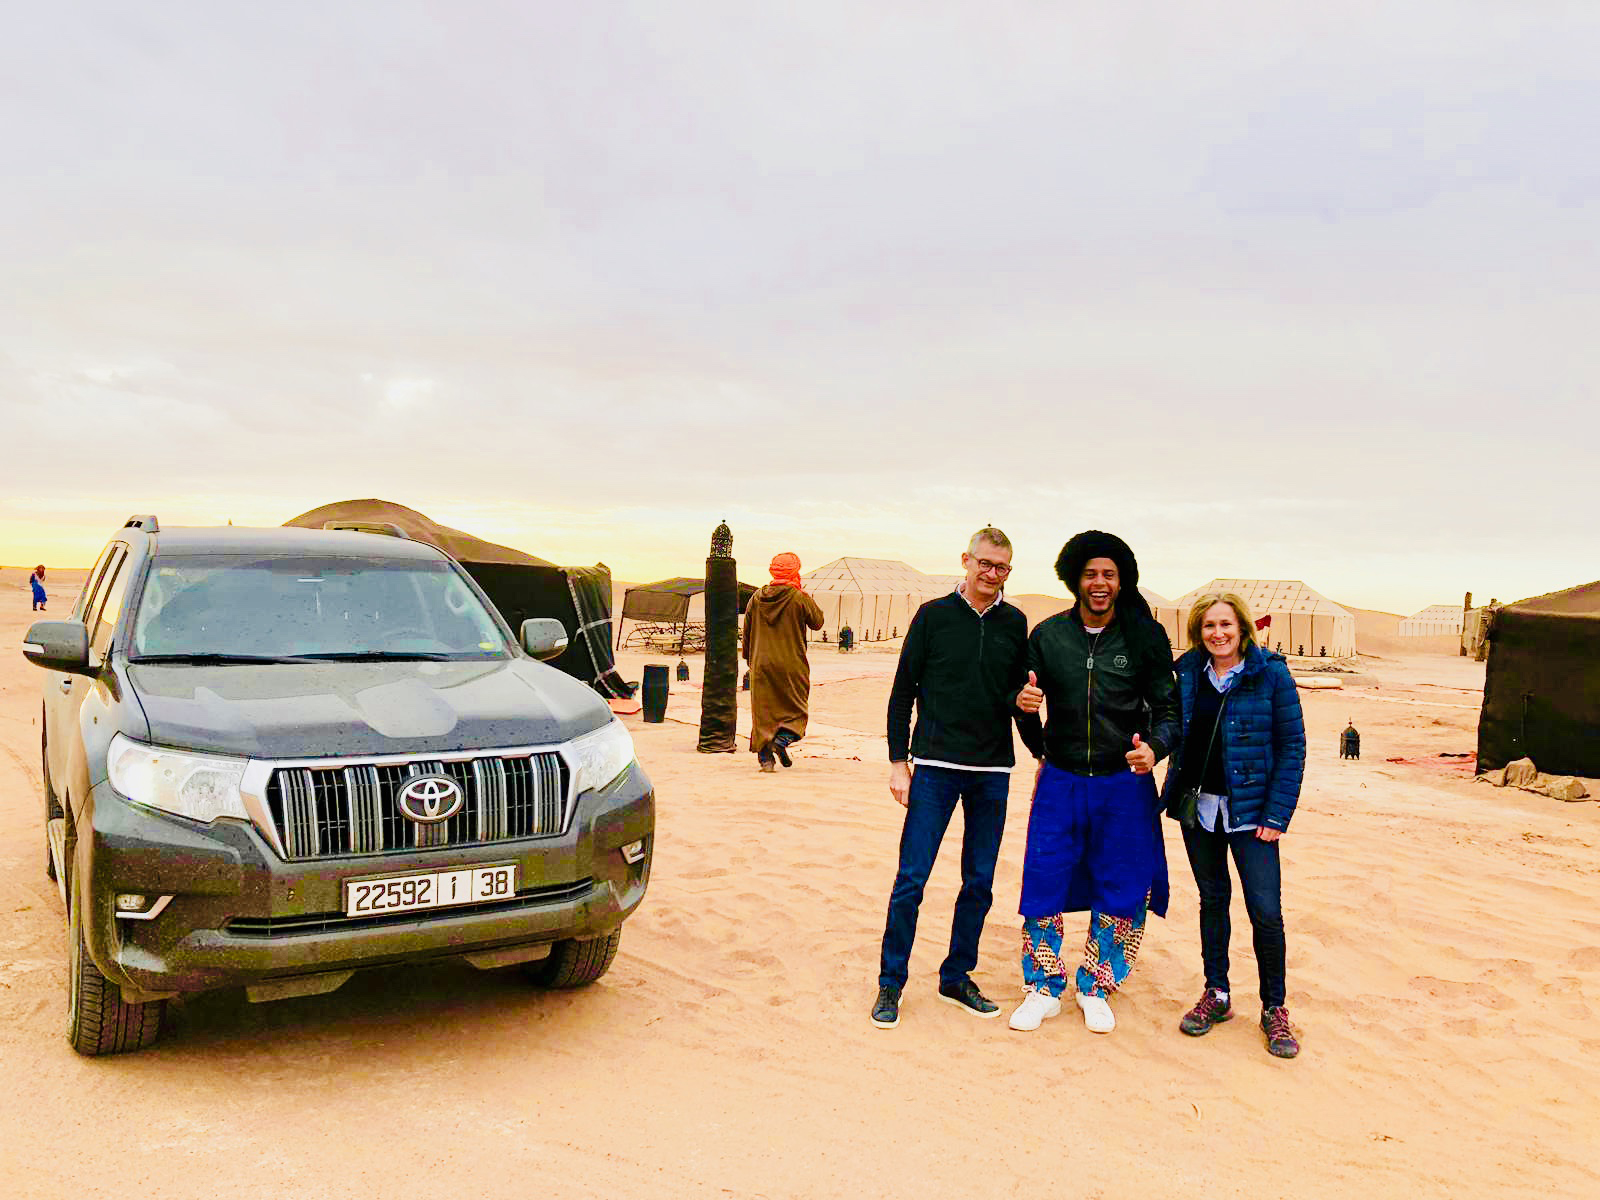 Morocco Sunny Days 4x4 in the desert with guests